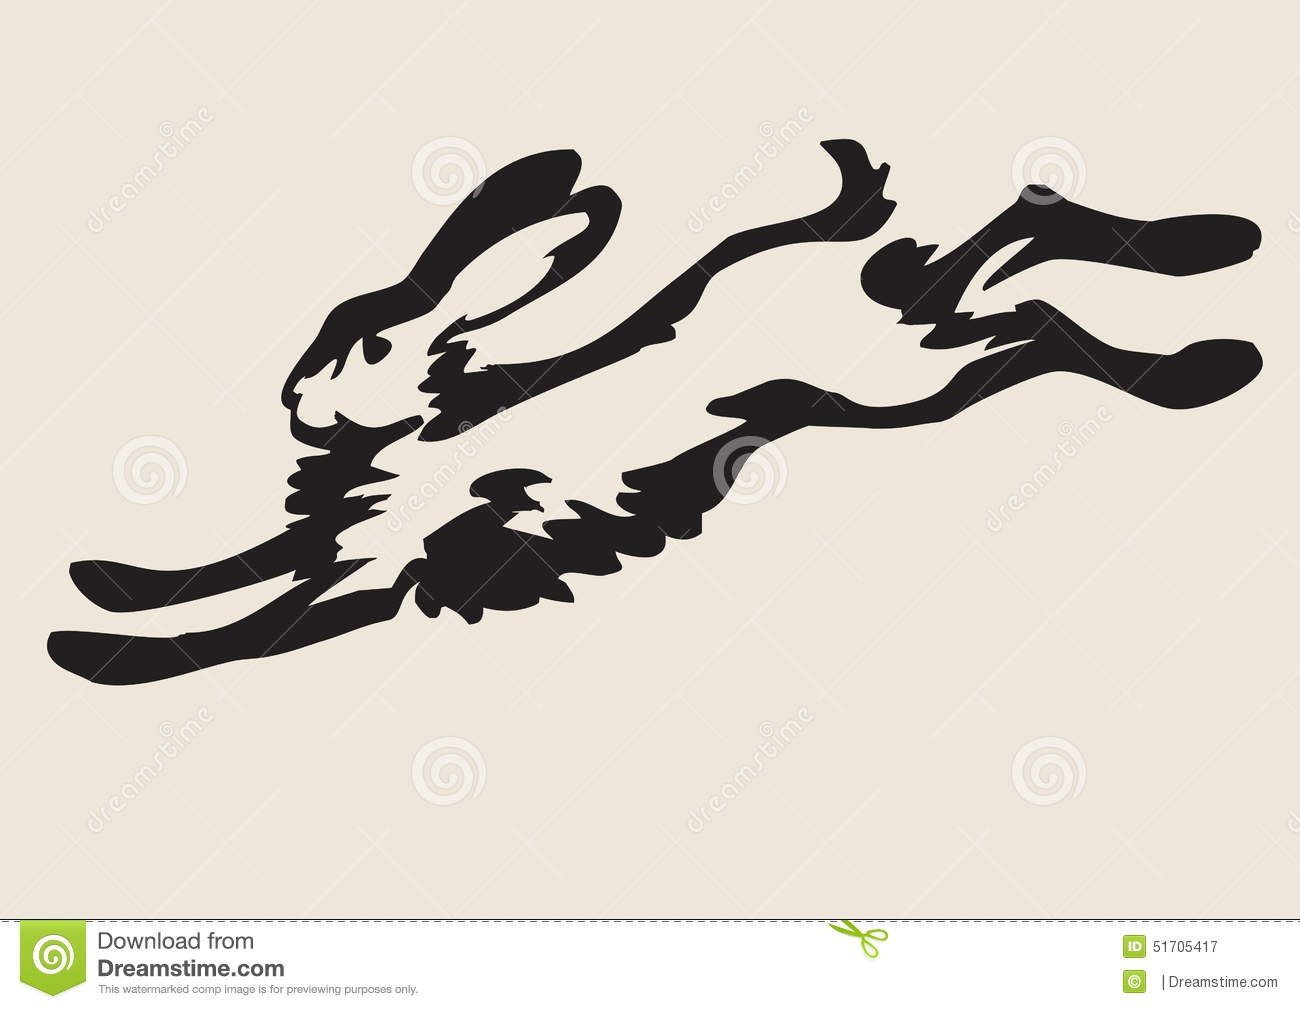 Hare running drawing - photo#25